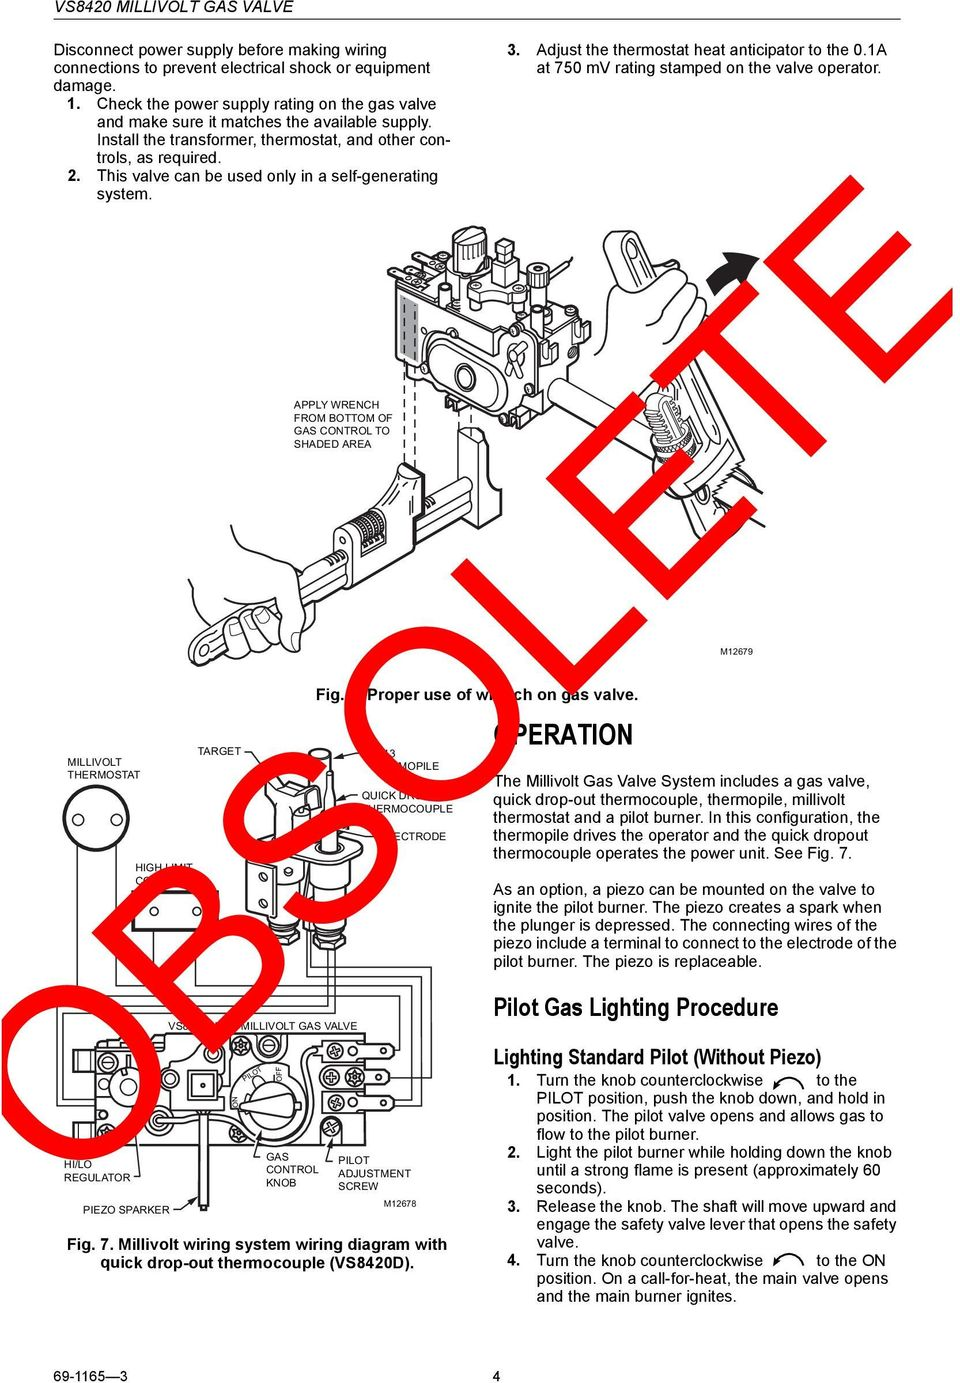 Obsolete Vs8420 Millivolt Gas Valve Pdf Piezo Wiring Diagram This Can Be Used Only In A Self Generating System